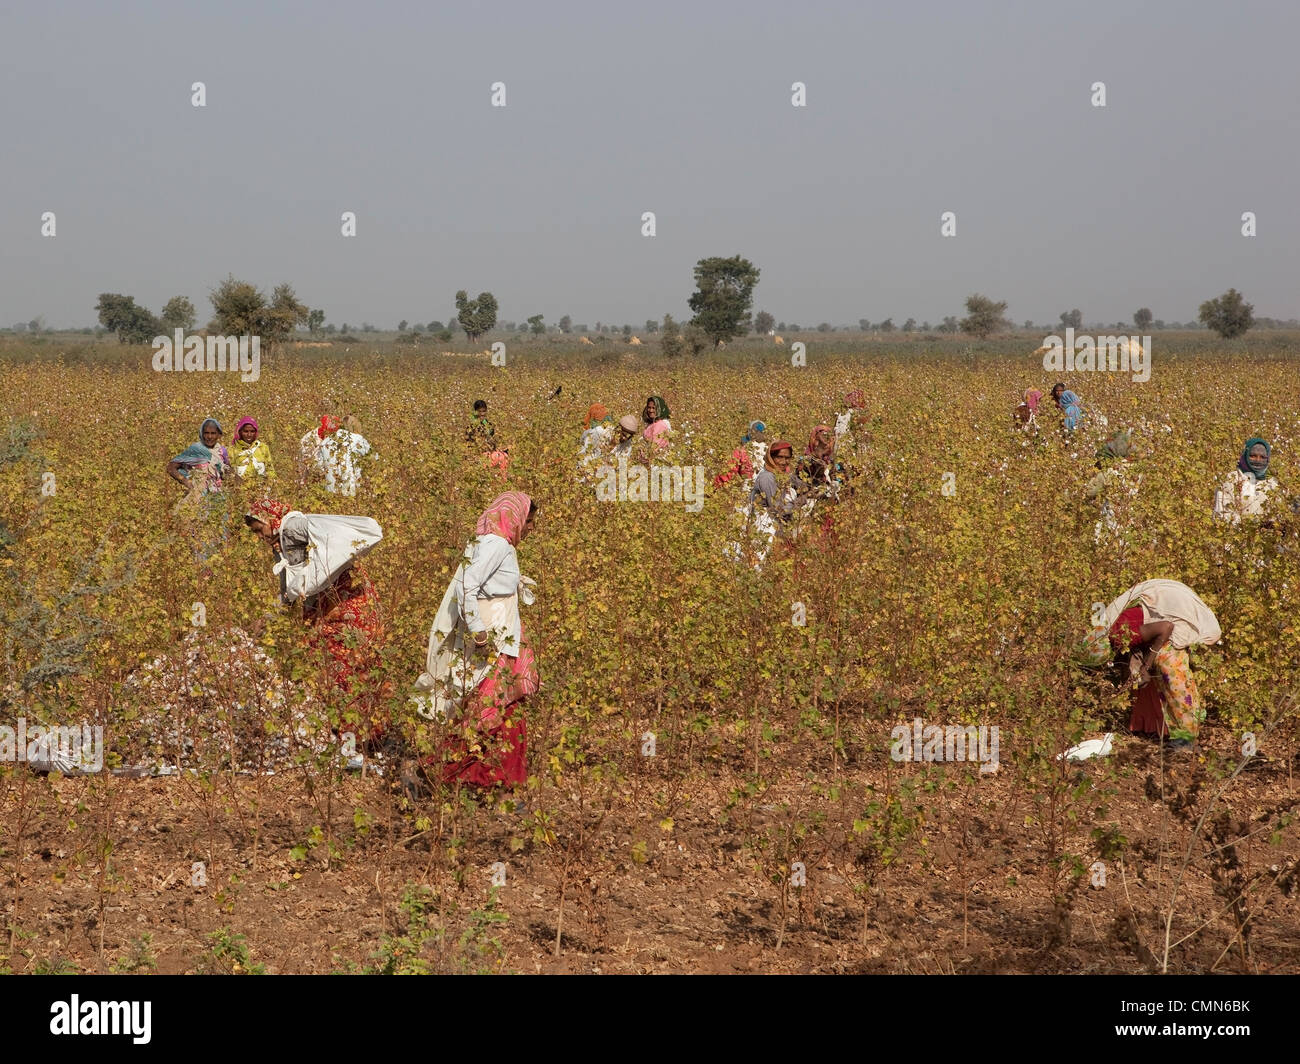 women field workers picking cotton in the arid fields of Gujarat in India - Stock Image